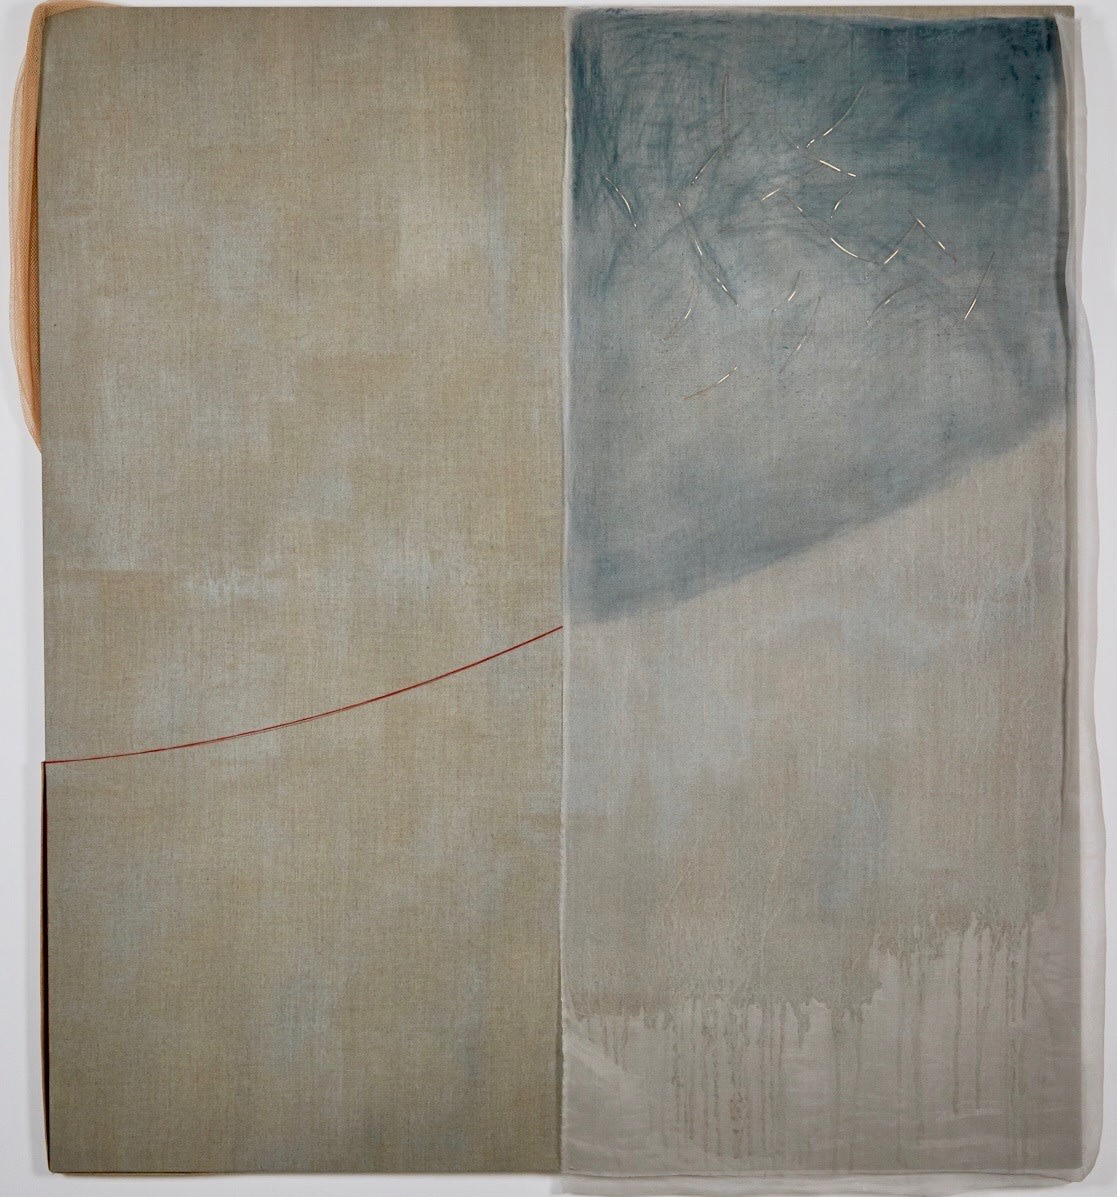 Gwenyth Fugard Construct 10, 2017 oil, organza, copper wire and thread on linen 180 x 160 cm 70 7/8 x 63 in signed